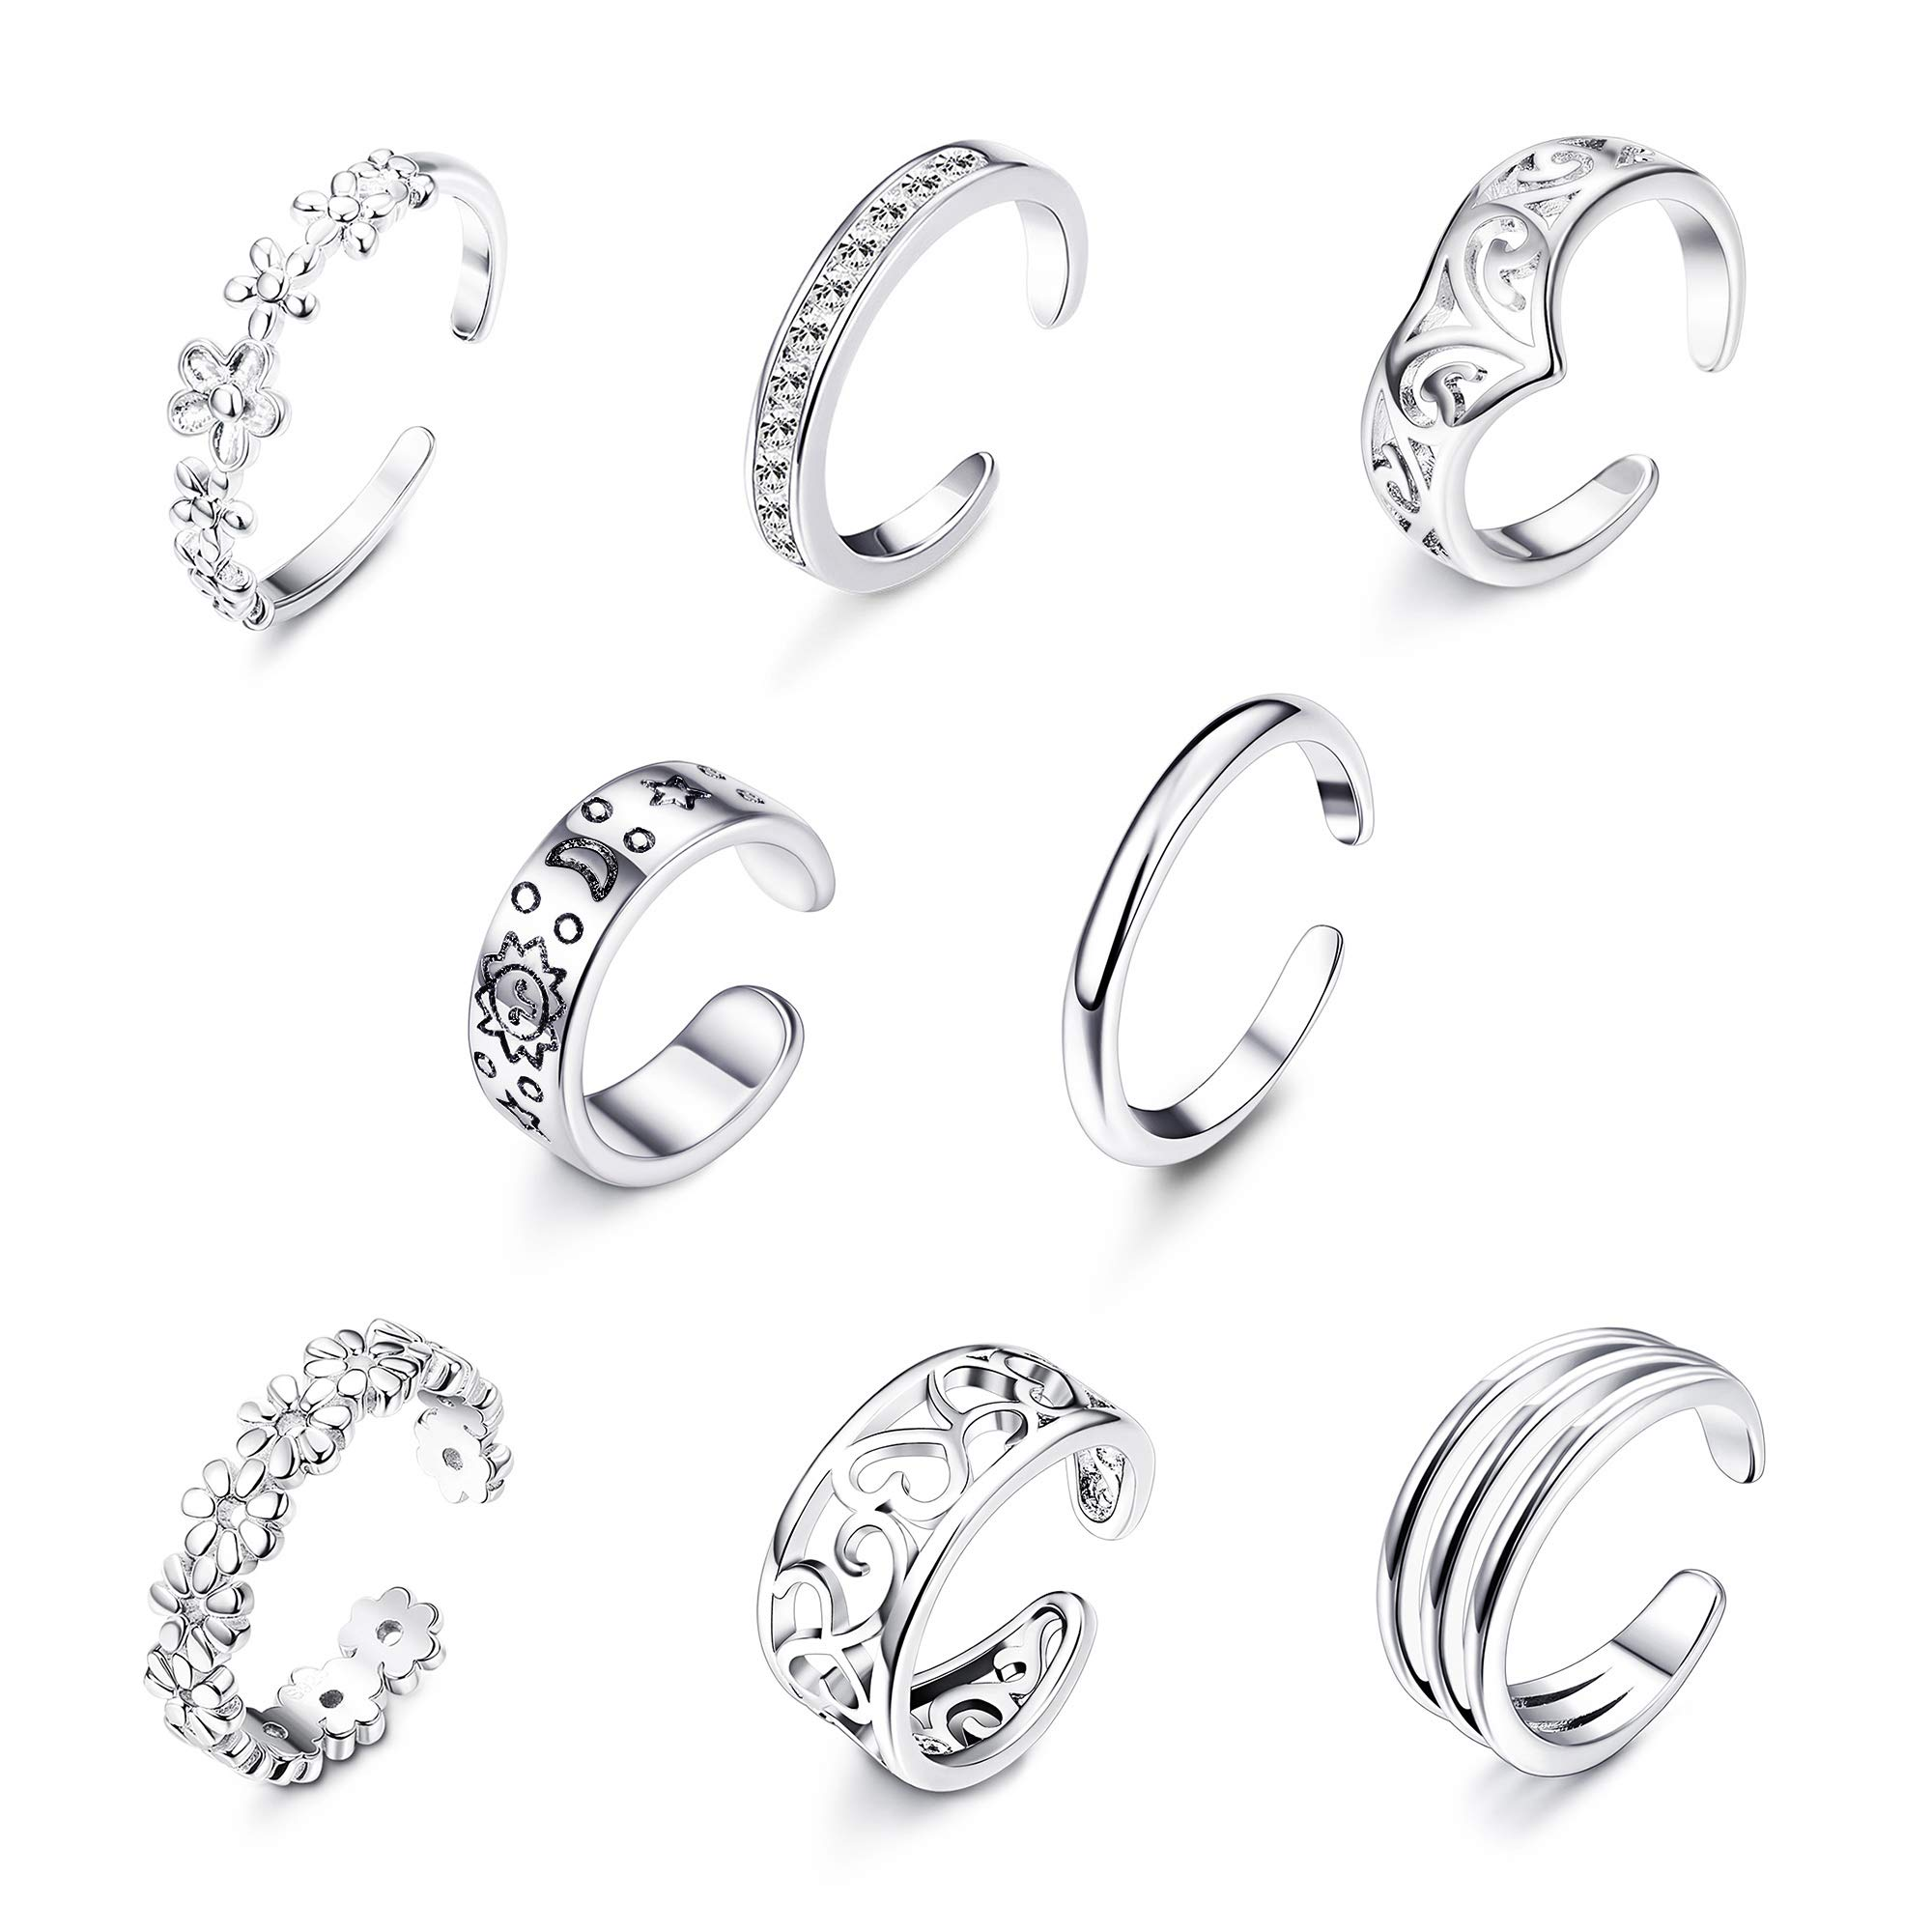 Milacolato 8Pcs Adjustable Toe Rings for Women Girls Open Toe Ring Knuckle Ring Set by Milacolato